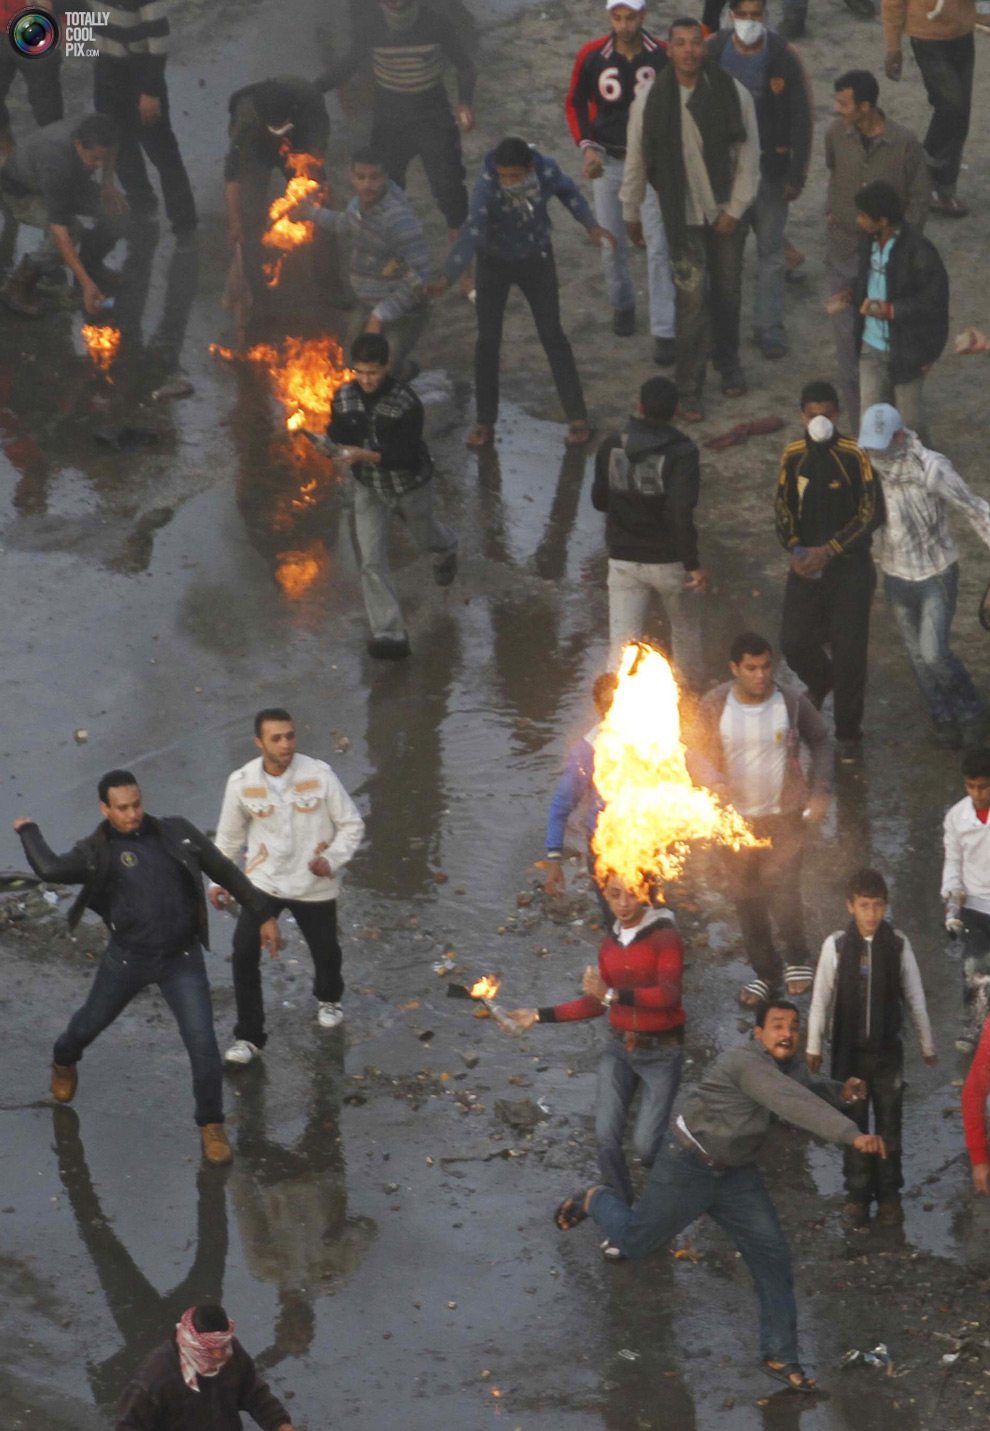 Firm-ripe peach Short Essay About Egyptian Revolution people died Tuesday